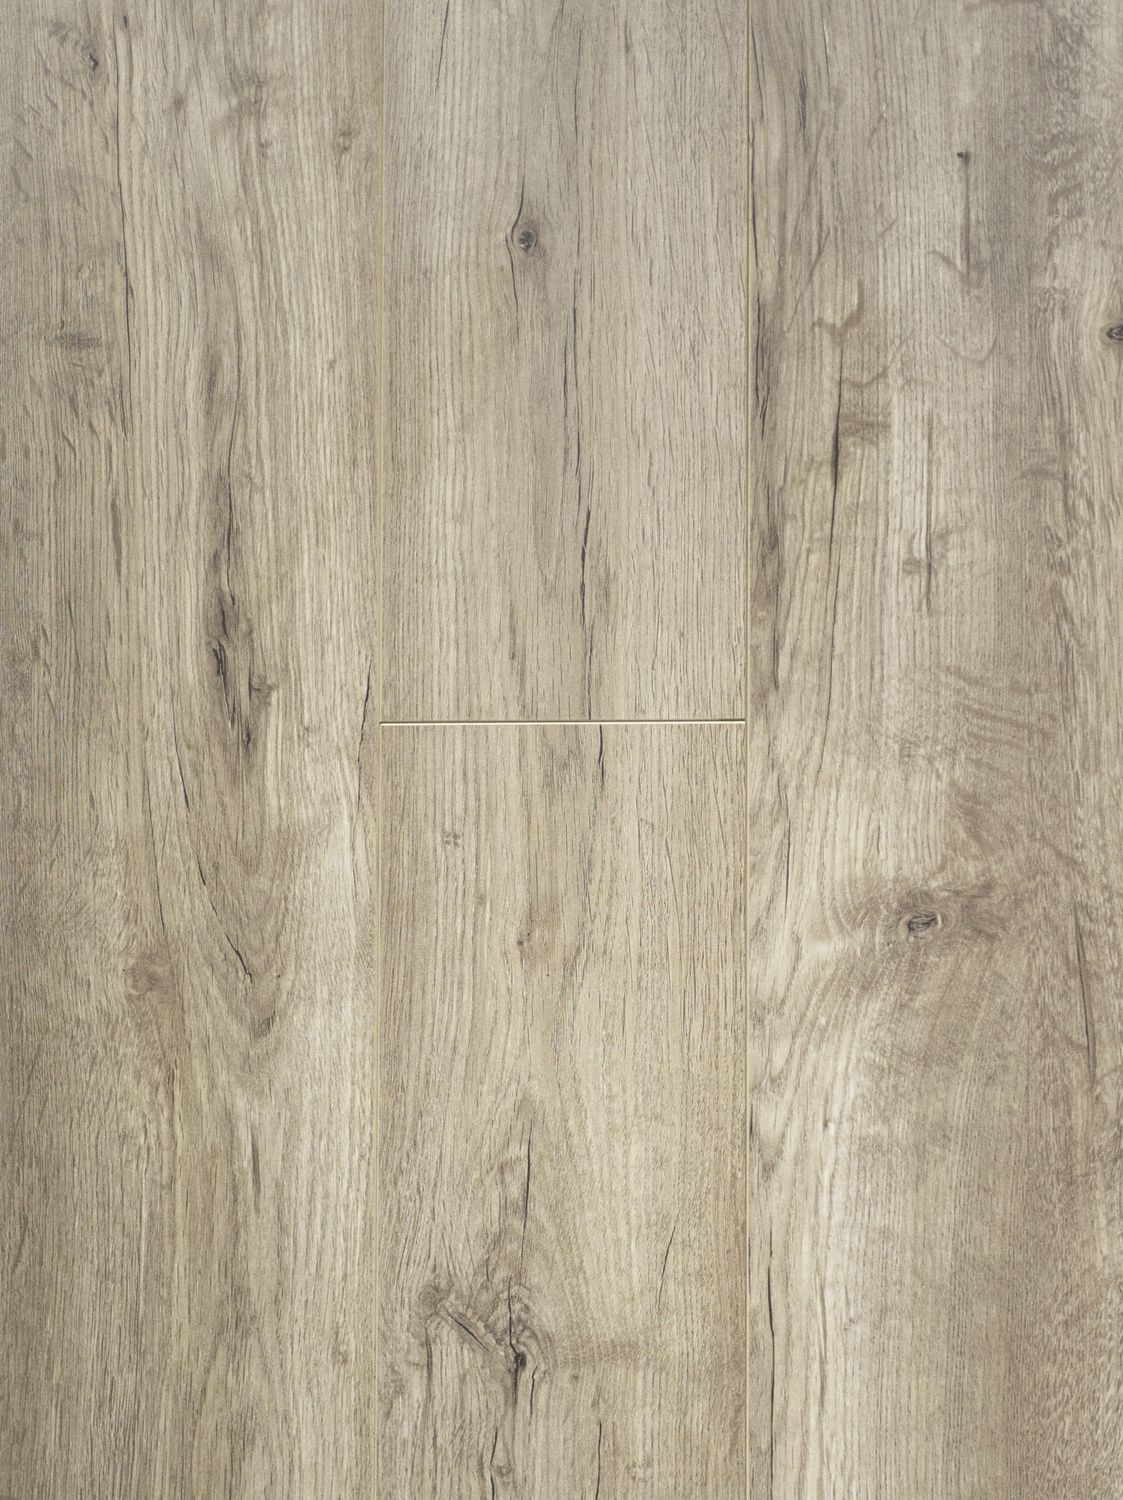 satin rundkante eiche super extra copy plank floor laminate products perspektive oak sensitive flooring natur floors tal of sq wood feet gloss valley nature per